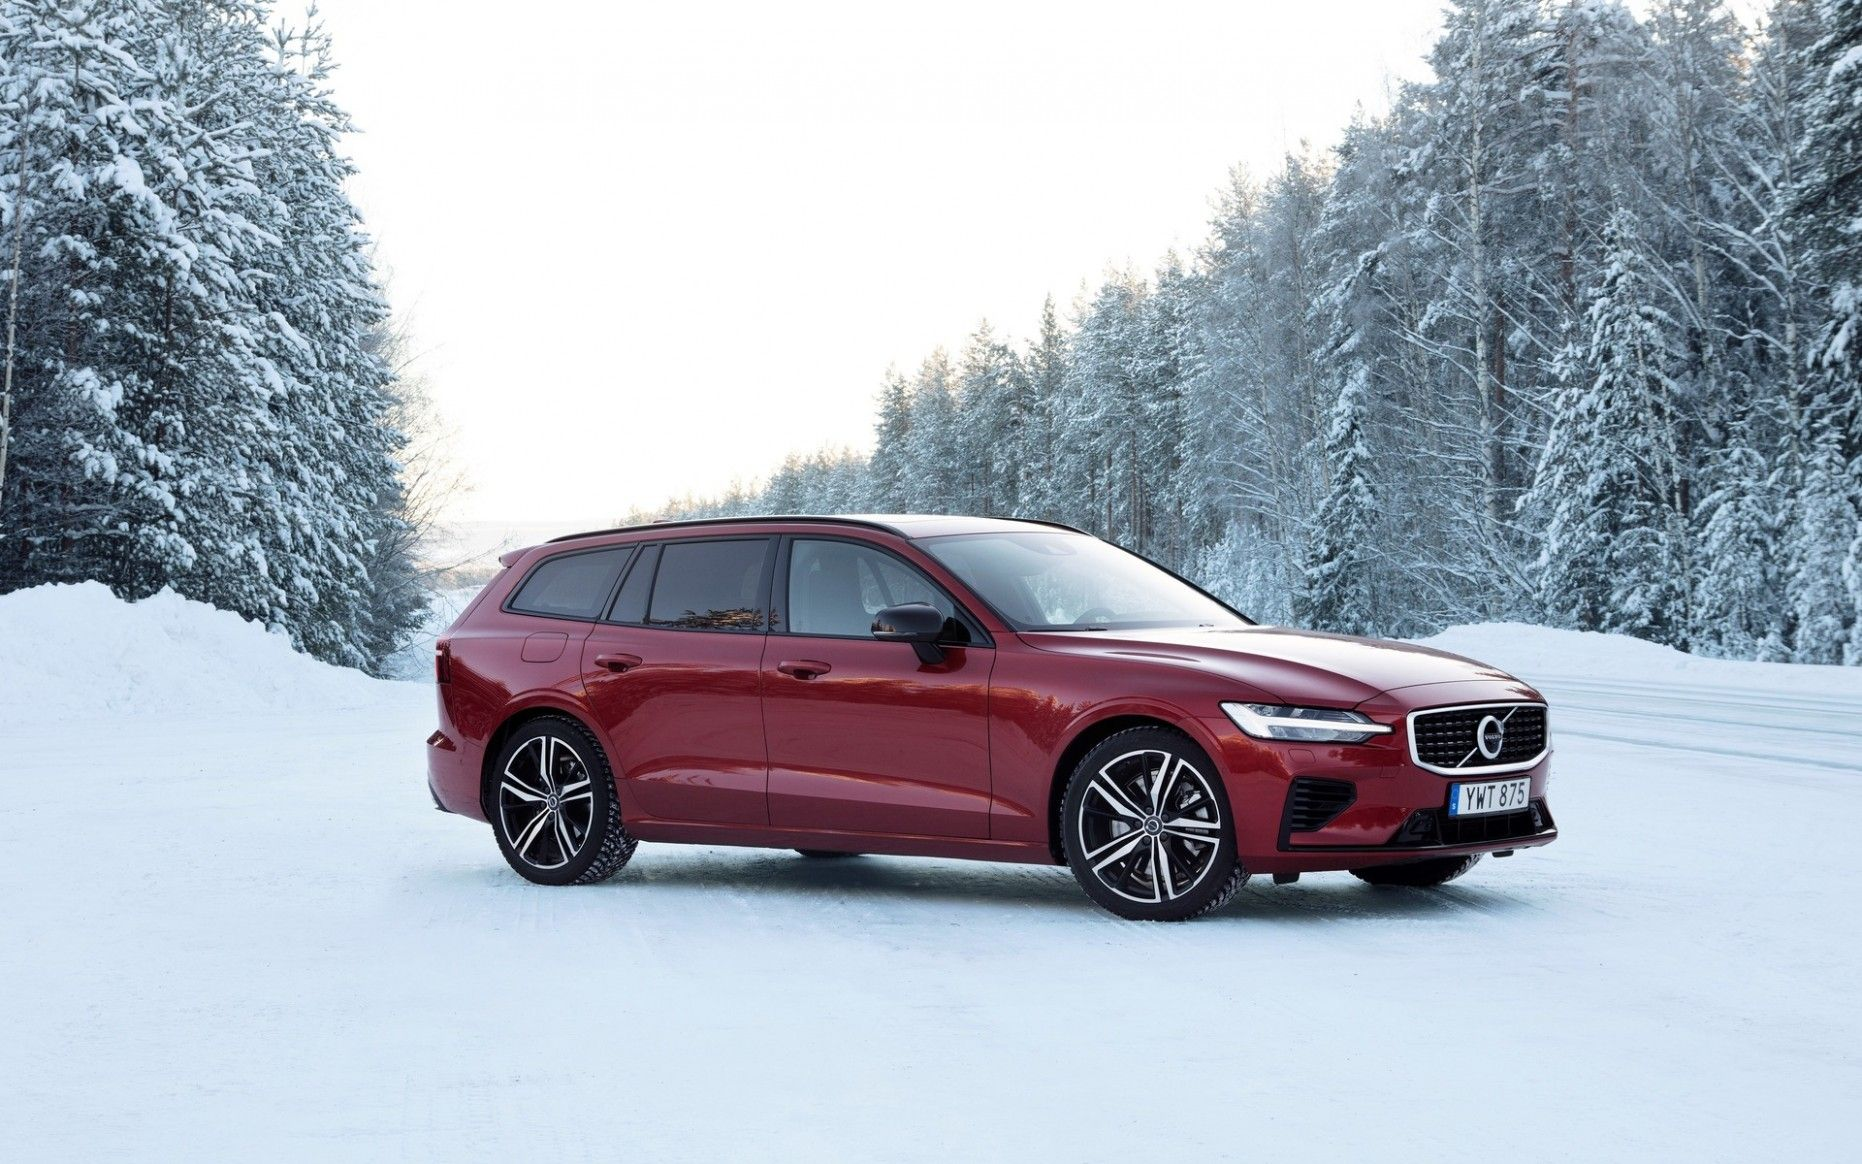 2021 Volvo Xc70 New Generation Wagon Specs and Review